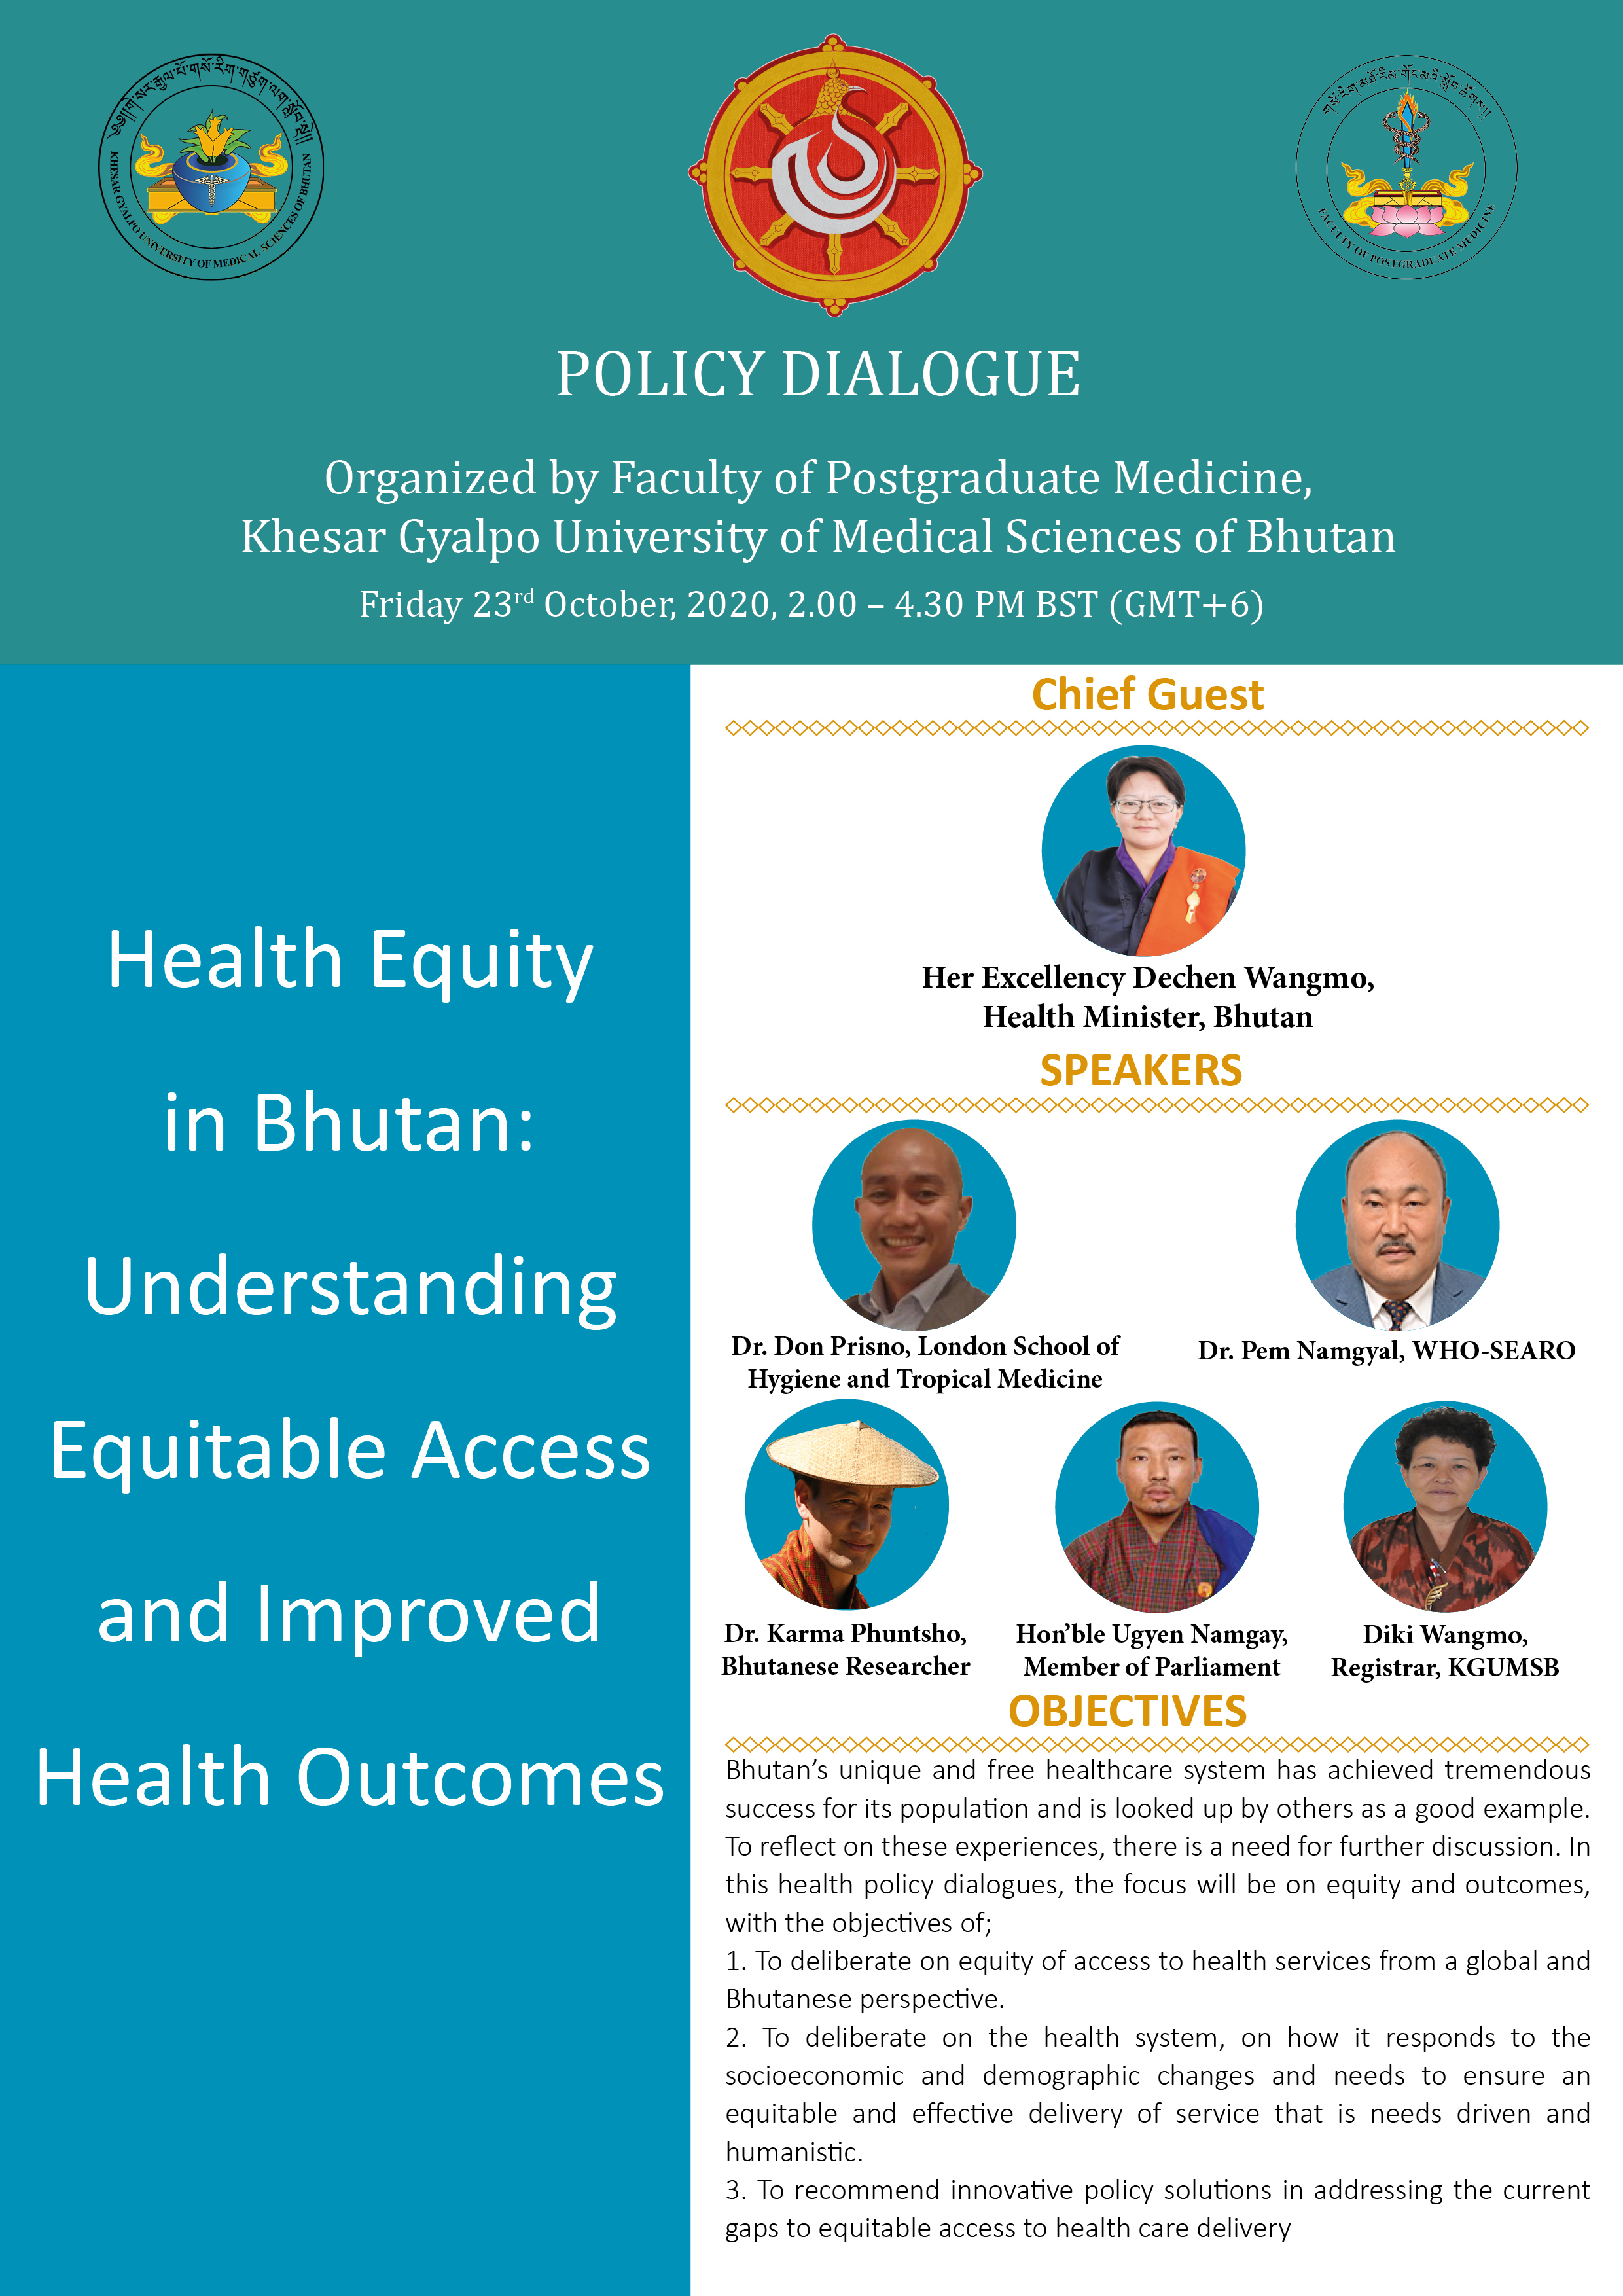 Policy Dialougue on Health Equity in Bhutan: Understanding Equitable Access and Improved Health Outcomes